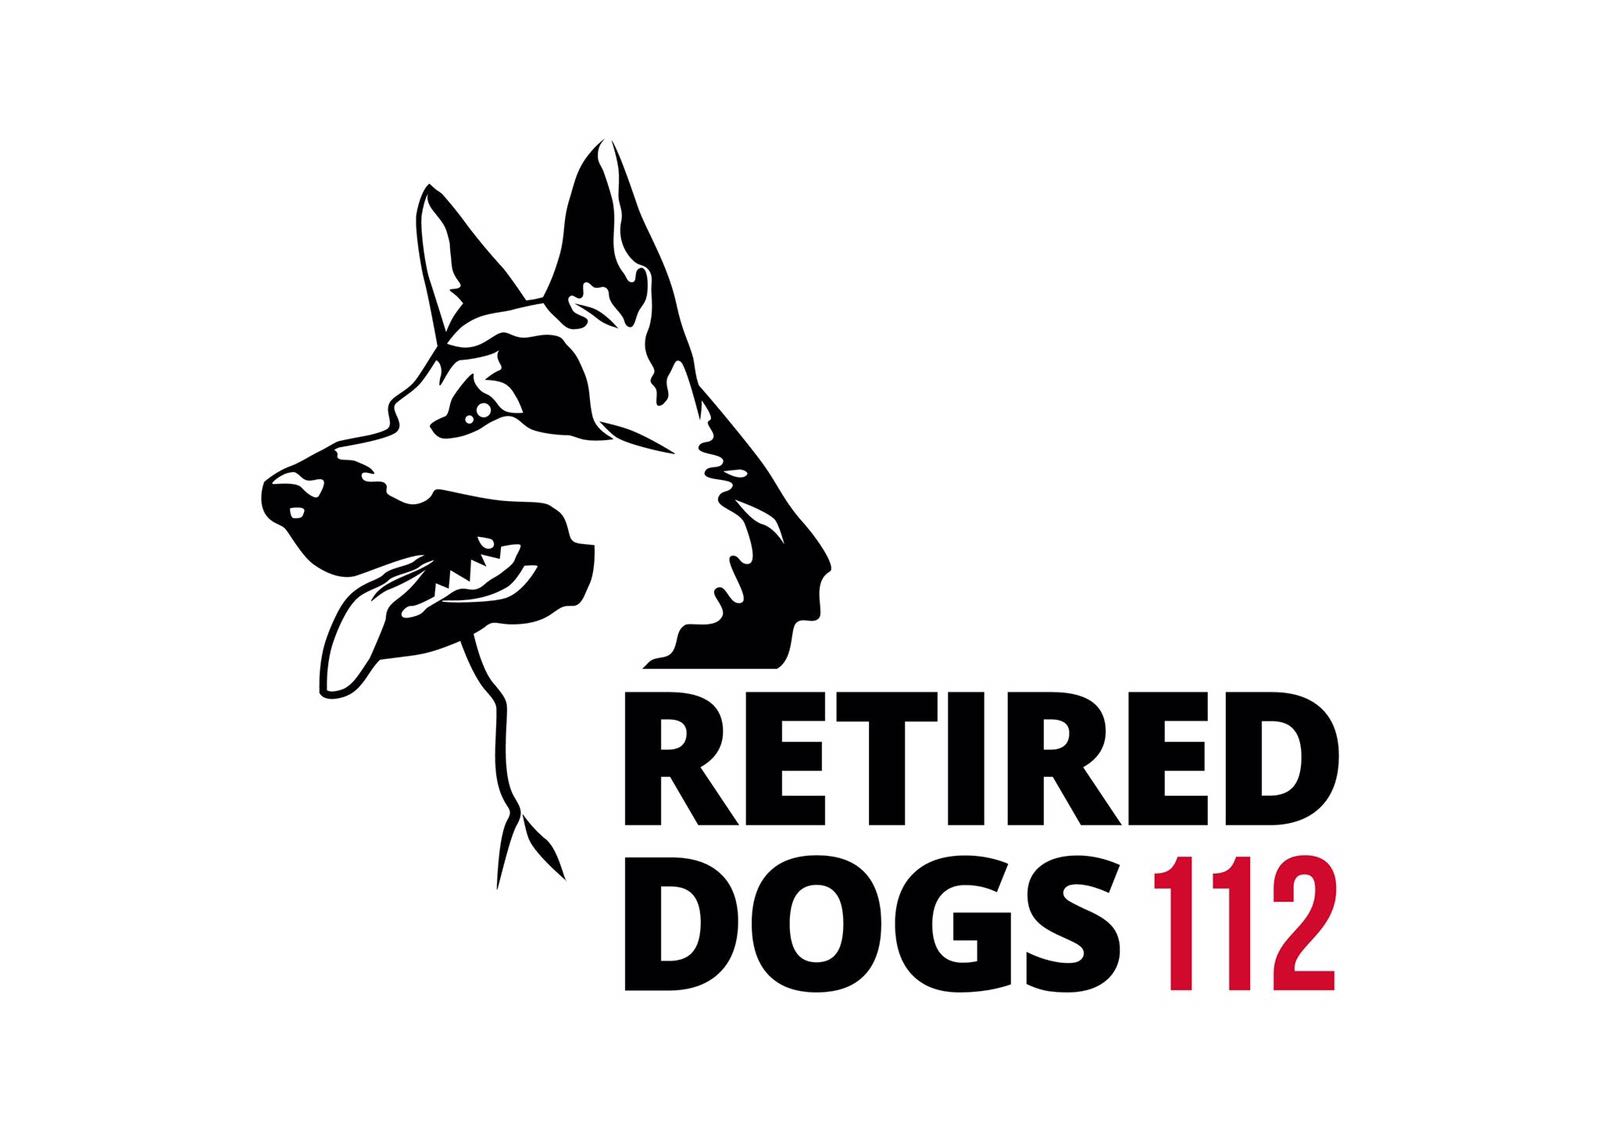 RETIRED DOGS 112